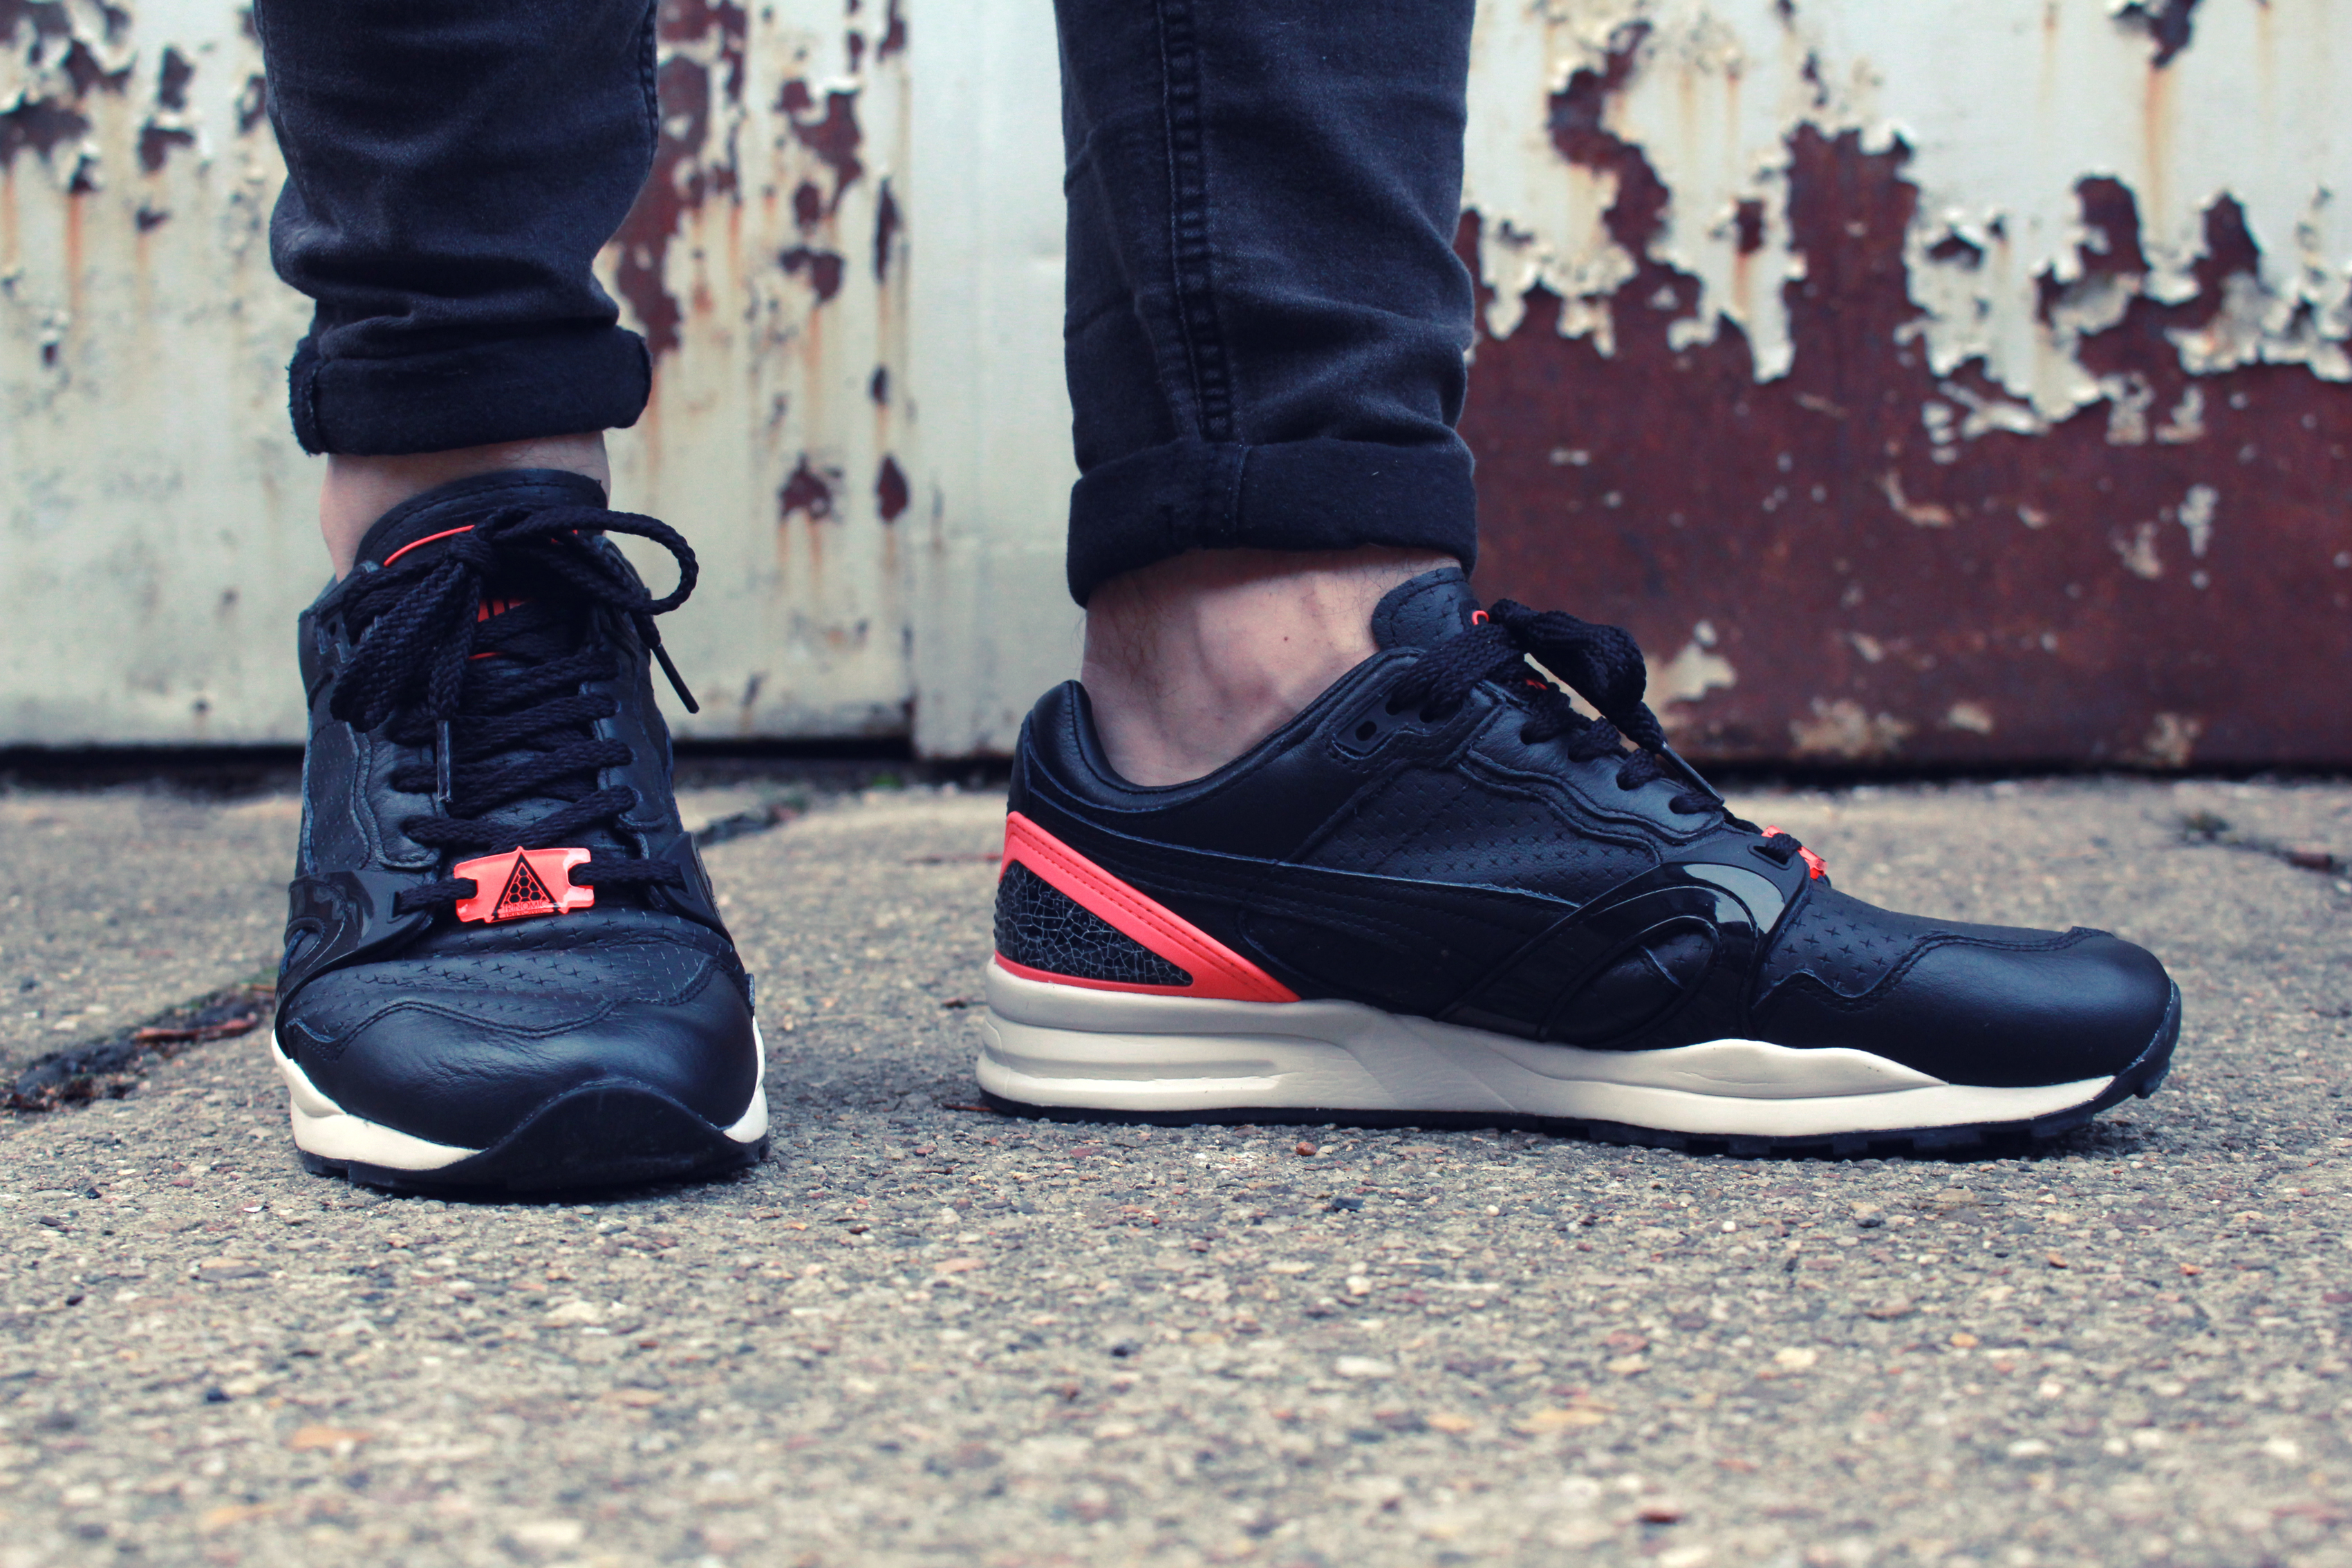 puma-trinomic-xt2-plus-black-crackle-pack-03